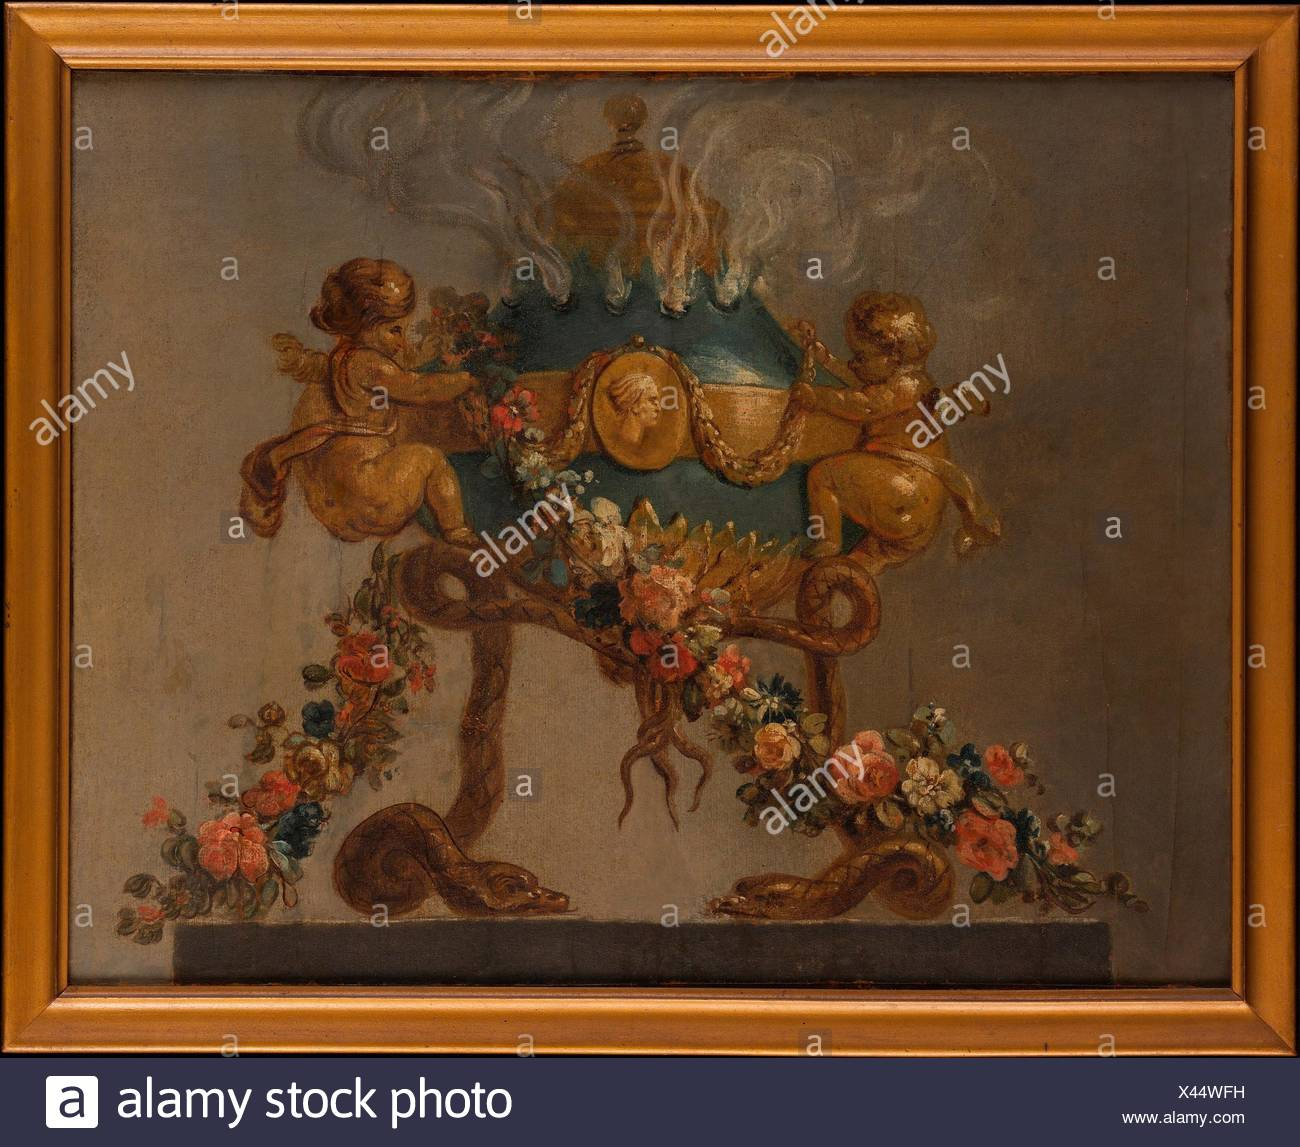 Perfume-burner supported by amorini and serpents and garlanded with flowers. Artist: French Painter , 18th century; Date: 18th century; Culture: - Stock Image